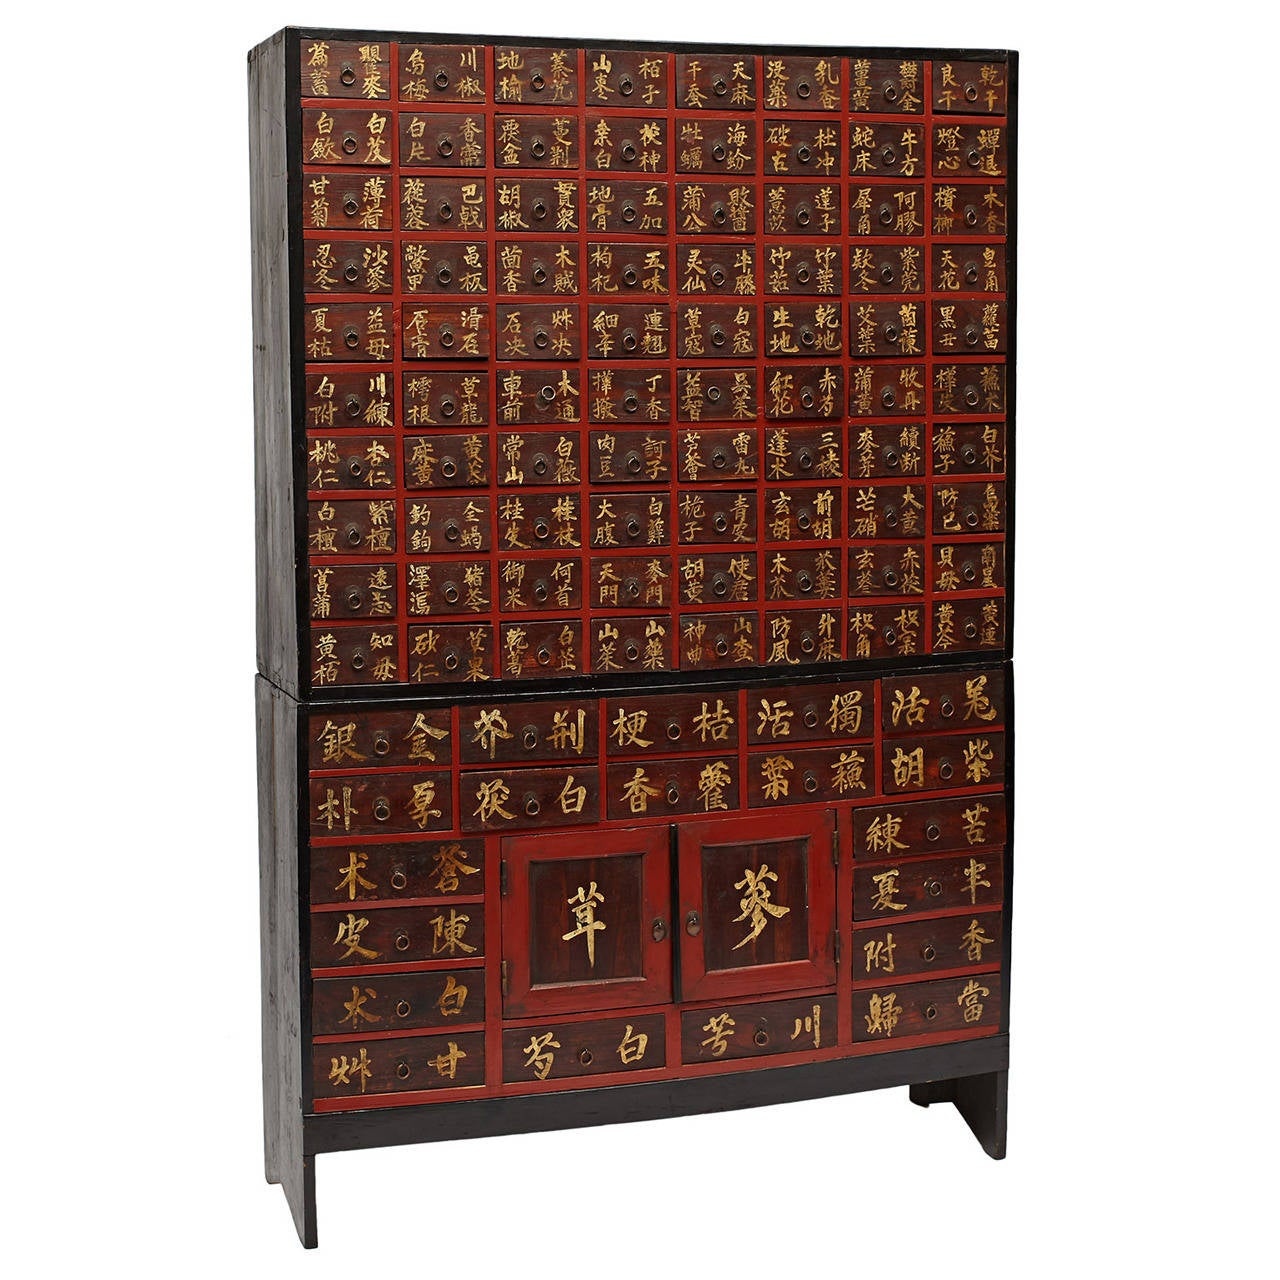 Antique Apothecary Cabinet Korean Herbal Apothecary Chest For Sale At 1stdibs